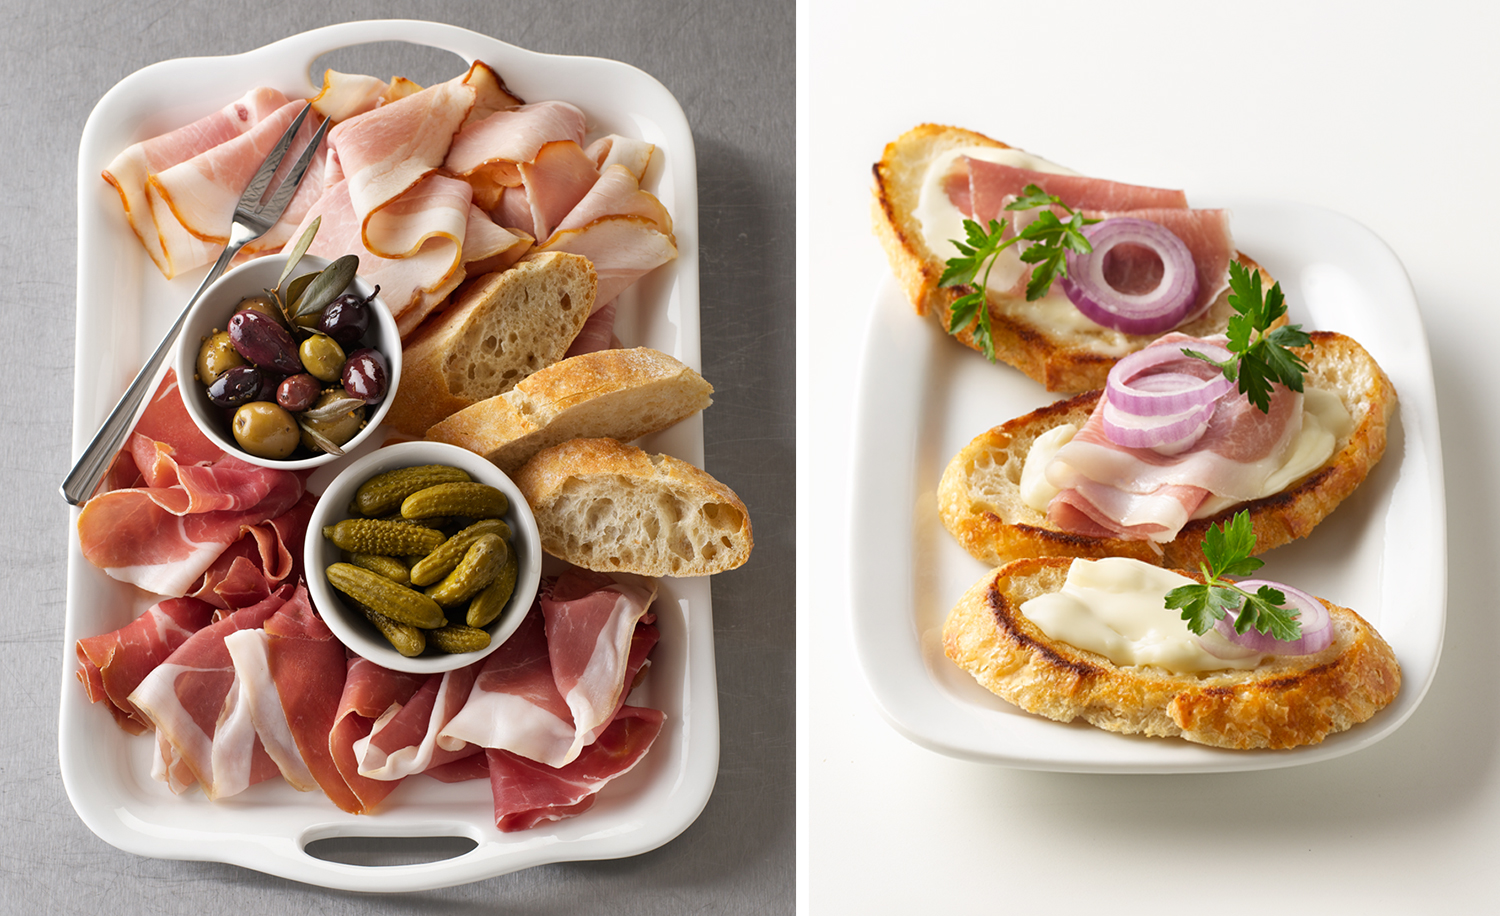 Deli Meat Platter And Crostini | Tony Kubat Photography